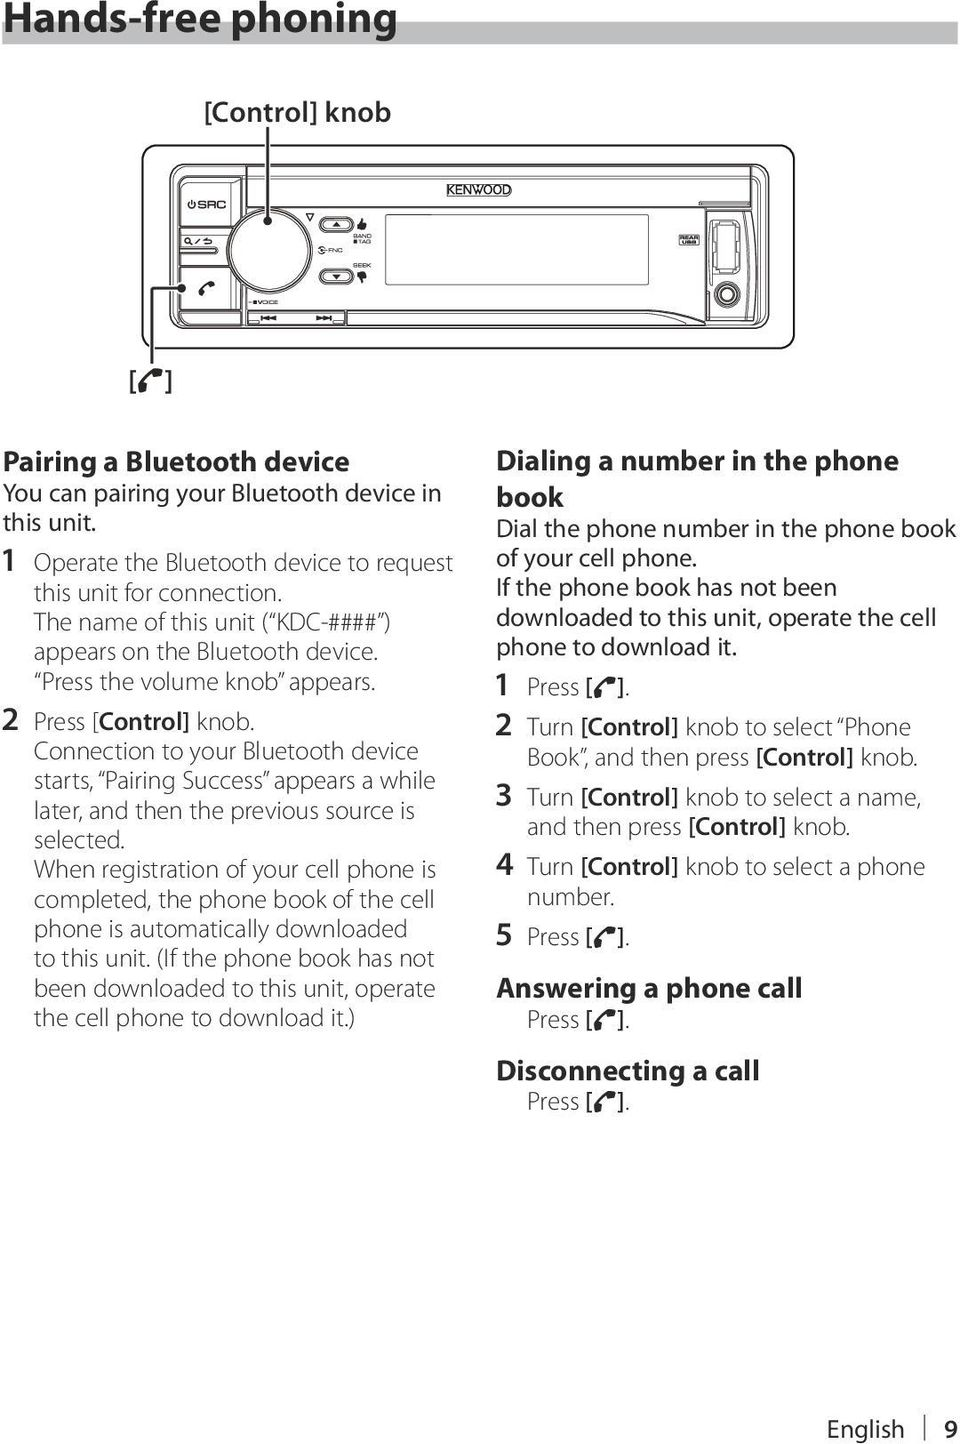 Connection to your Bluetooth device starts, Pairing Success appears a while later, and then the previous source is selected.